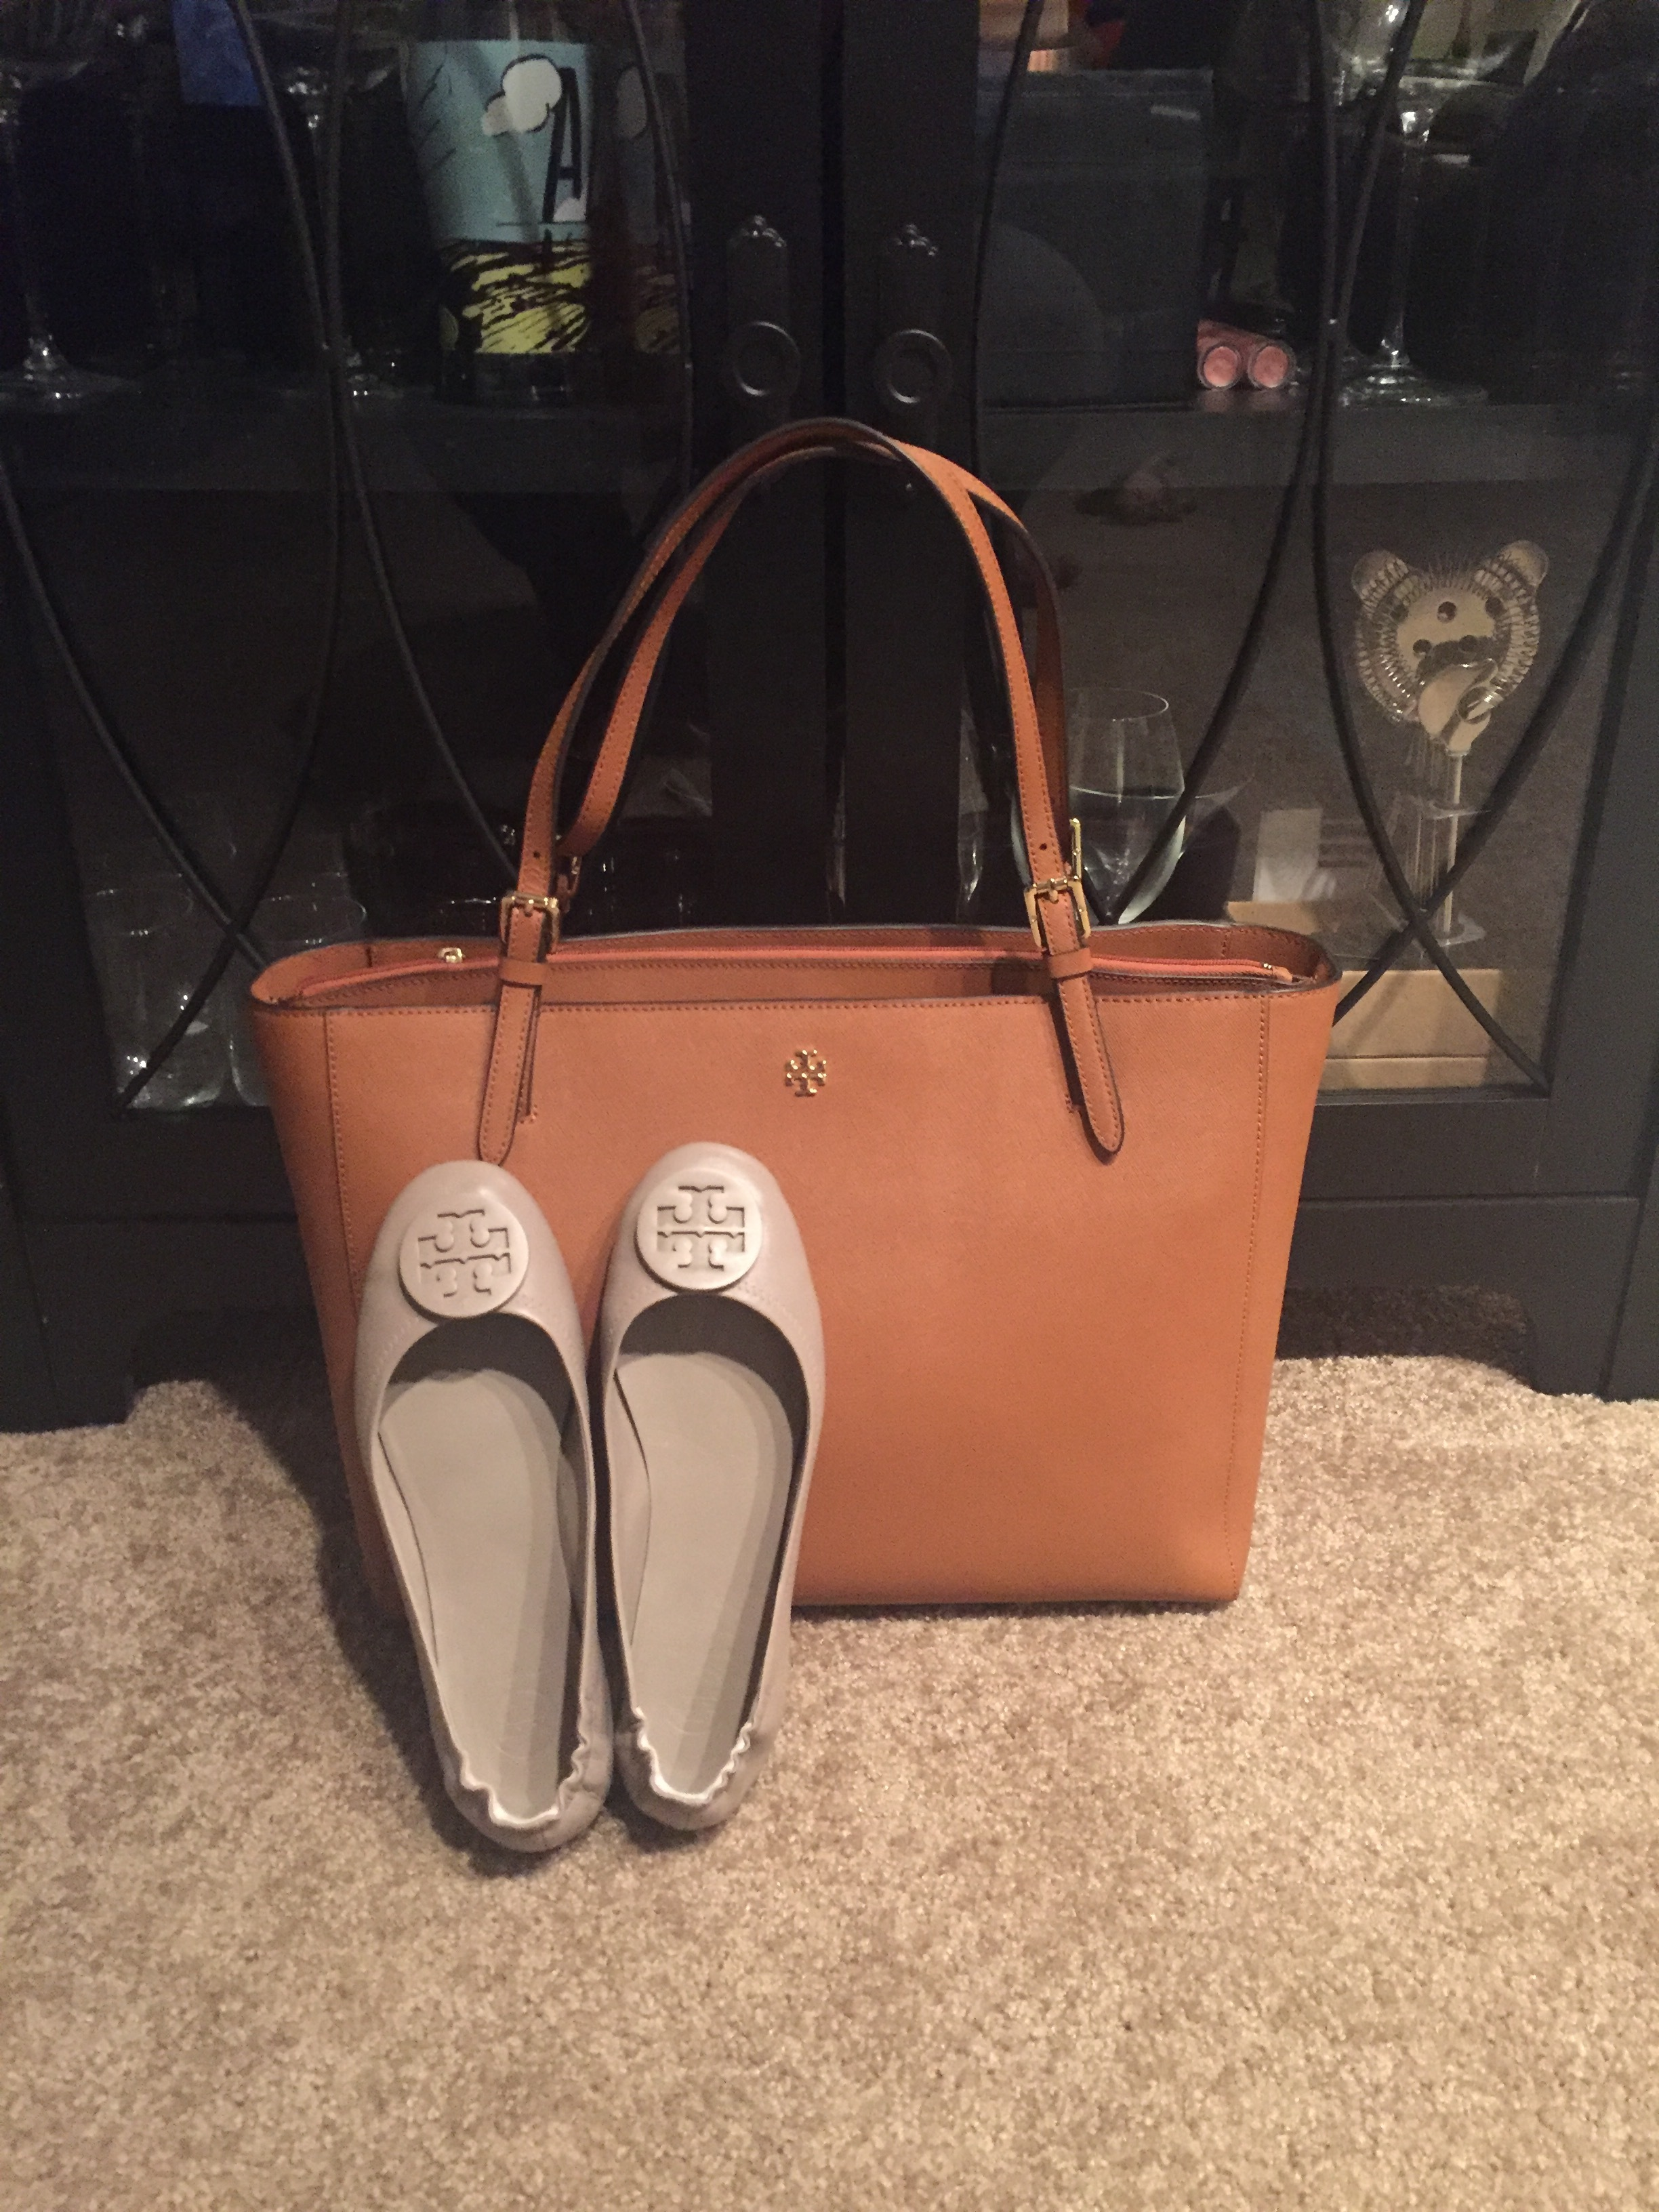 Hello Beautiful!   12:30-1:30: Mom and I walk into Saks to head out but Mom wanted to stop in at Louis Vuitton so we did just that. Let's just say she walked away a happy camper.   1:30-2:00: Head back towards out neck of the woods and go get our Nails and Toes done, Lord knows I needed that so bad. We went to Piedmont Nail Bar and had a relaxing time getting those done. Mom took me back to my car to head home to spend some time with my husband before we all went out to dinner.  4:00-5:00: I met my best friend for a drink and appetizers at Marlow's Tavern, we each had a glass of Conn Creek Cab, if you have not tried this you need to. It is a little more on the expensive side but so worth the money. We talked and hung out.  5:00-6:45: I came home from drinks and appetizers and got to relax for about 2 hours as we were meeting for dinner at 7:00. Again I was playing catch up with my shows, until it was time to leave.  7:00-8:30: Me, Matt and my Parents met at El Felix for dinner, it is a Mexican restaurant and it is delicious, we normally do Cheesecake Factory but I wanted to change it up a little bit and go somewhere different. Good decision on my part. Spent time with my parents and enjoyed their company.  Now I know ya'll are like what about Matt? What did he get you? Well, he says my gift won't be here for another week or so. Shipping.. I have no idea. But once I get it I will let you guys know!  Well, that sums up what happened on my birthday, needless to say I was tired that night. It was a busy day. Getting spoiled on my 29th!! As my best friend used as a hashtag #making29lookohsofine yes ma'am that is correct!!  Xoxo, Erin  Follow Me:   Facebook ~  Twitter ~  Pinterest ~  Bloglovin